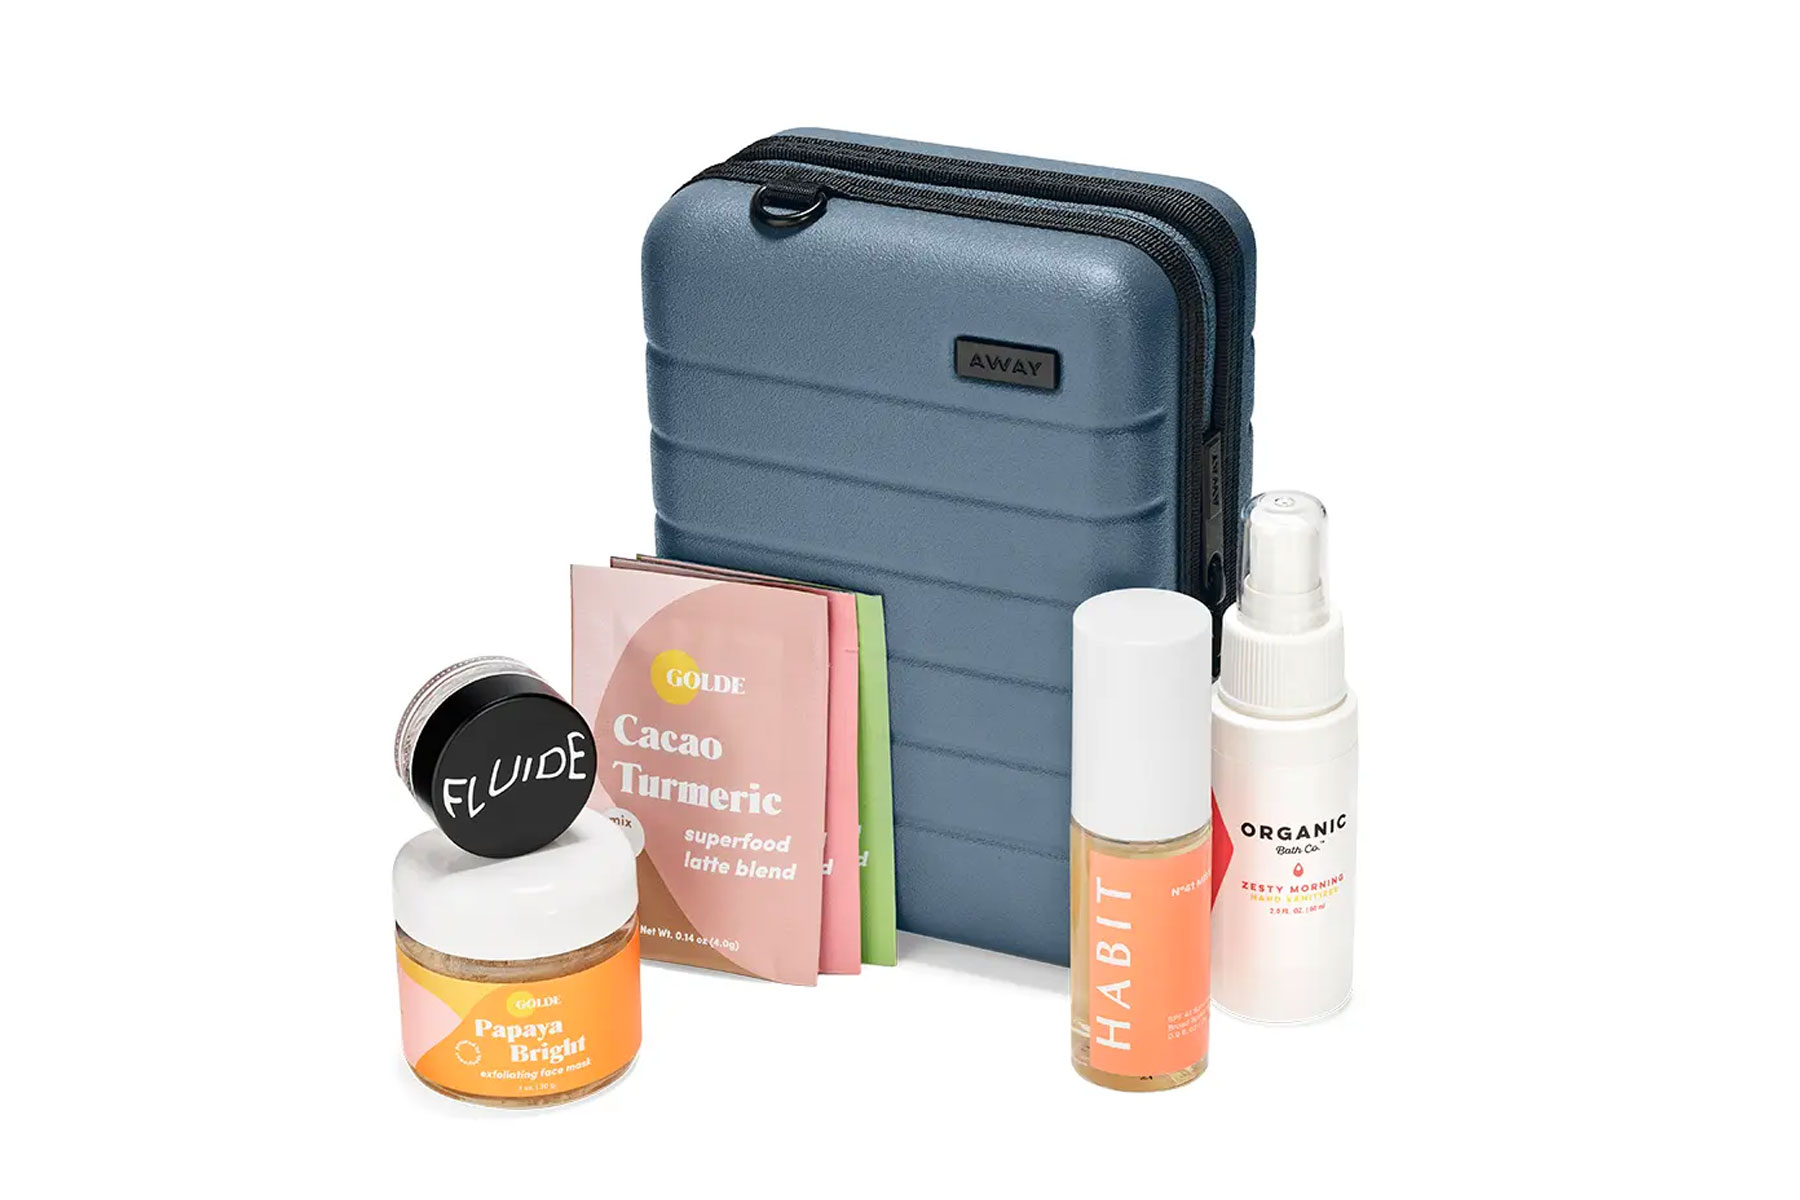 Mini suitcase with skincare and wellness products